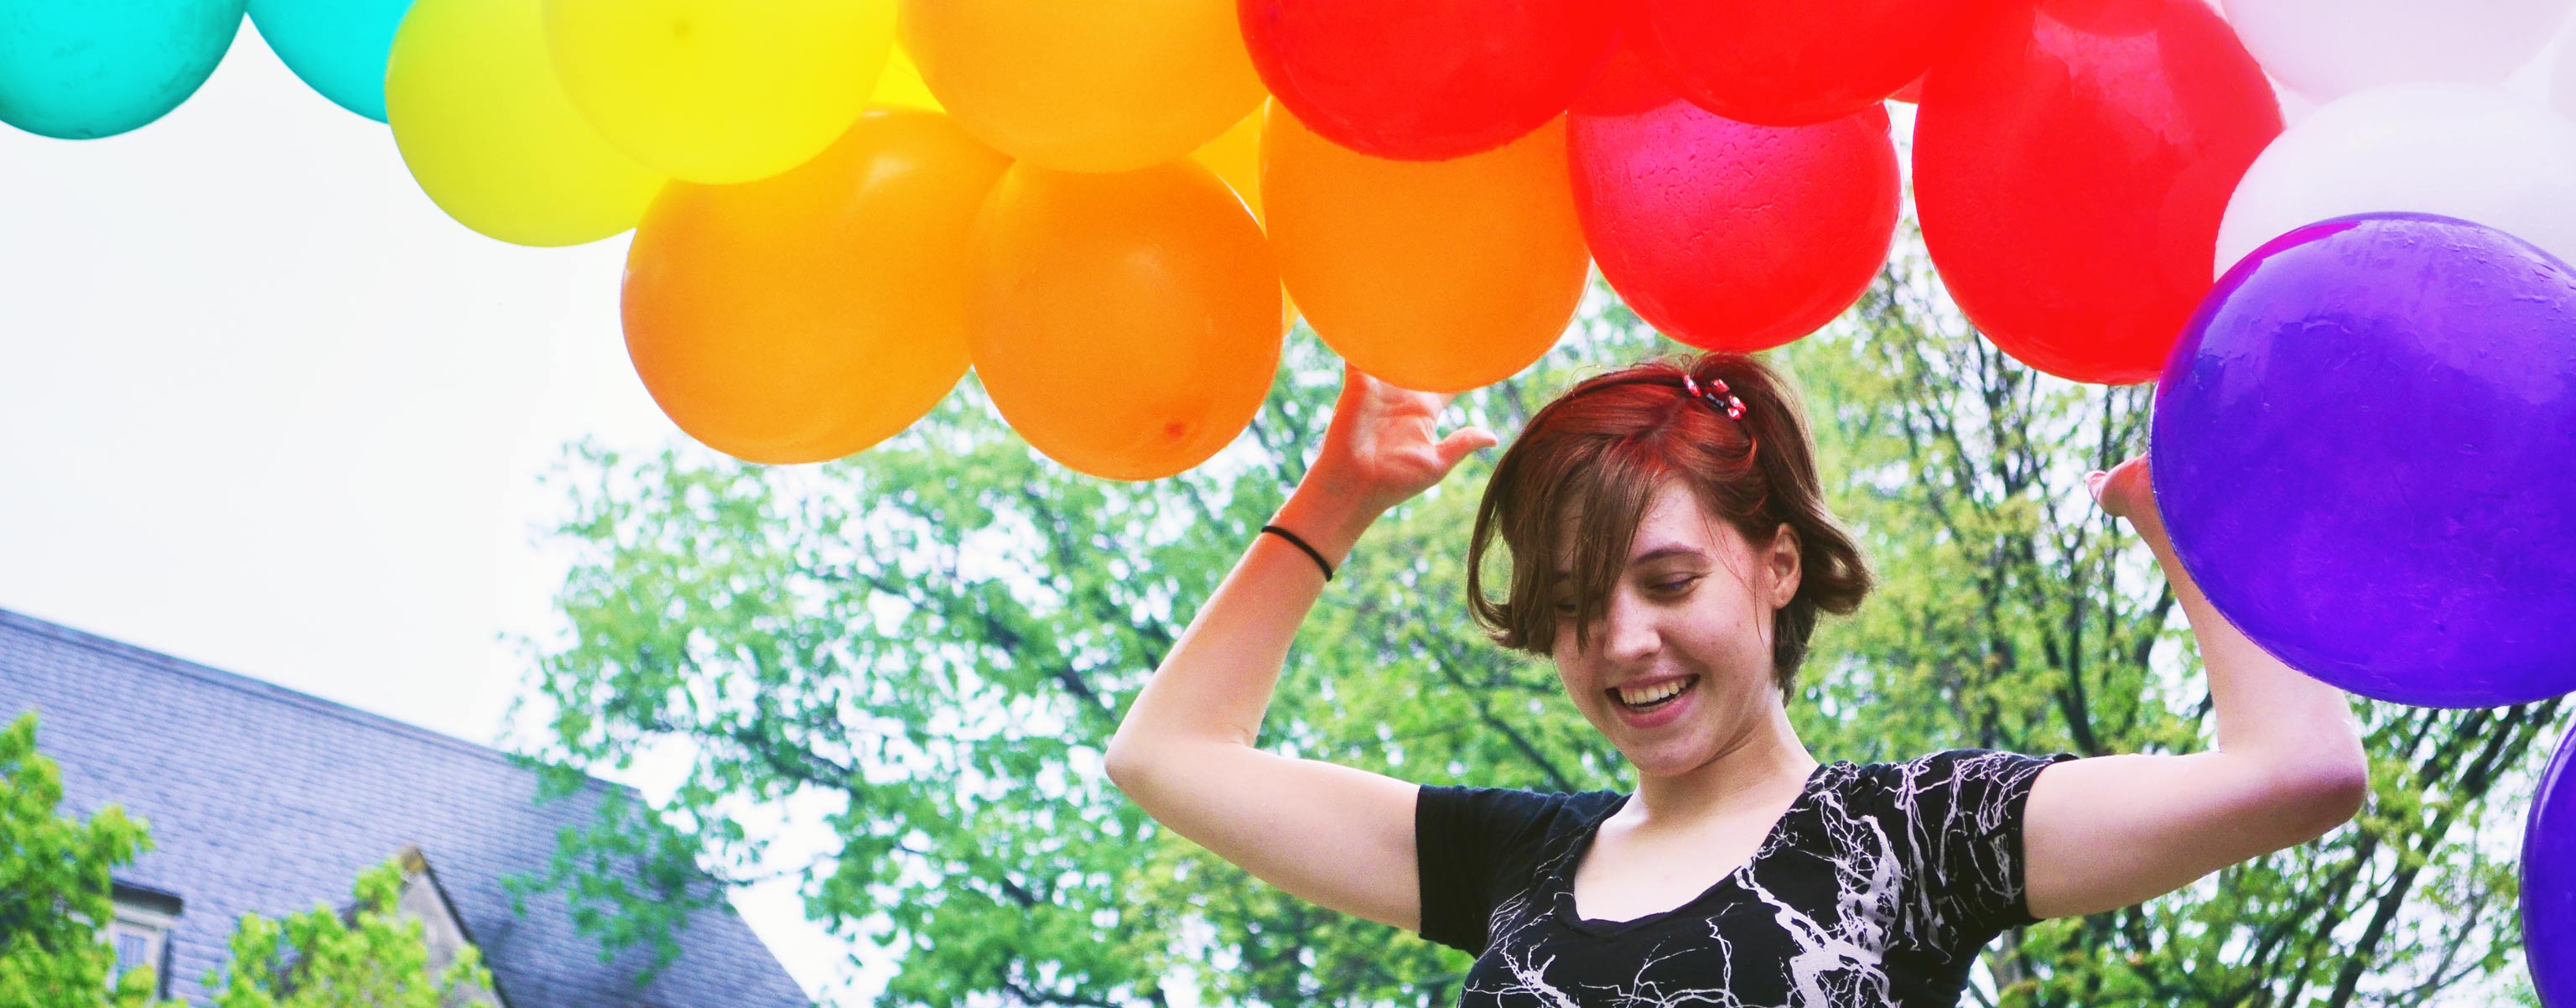 Brunette female student smiles while holding a large bunch of colorful balloons